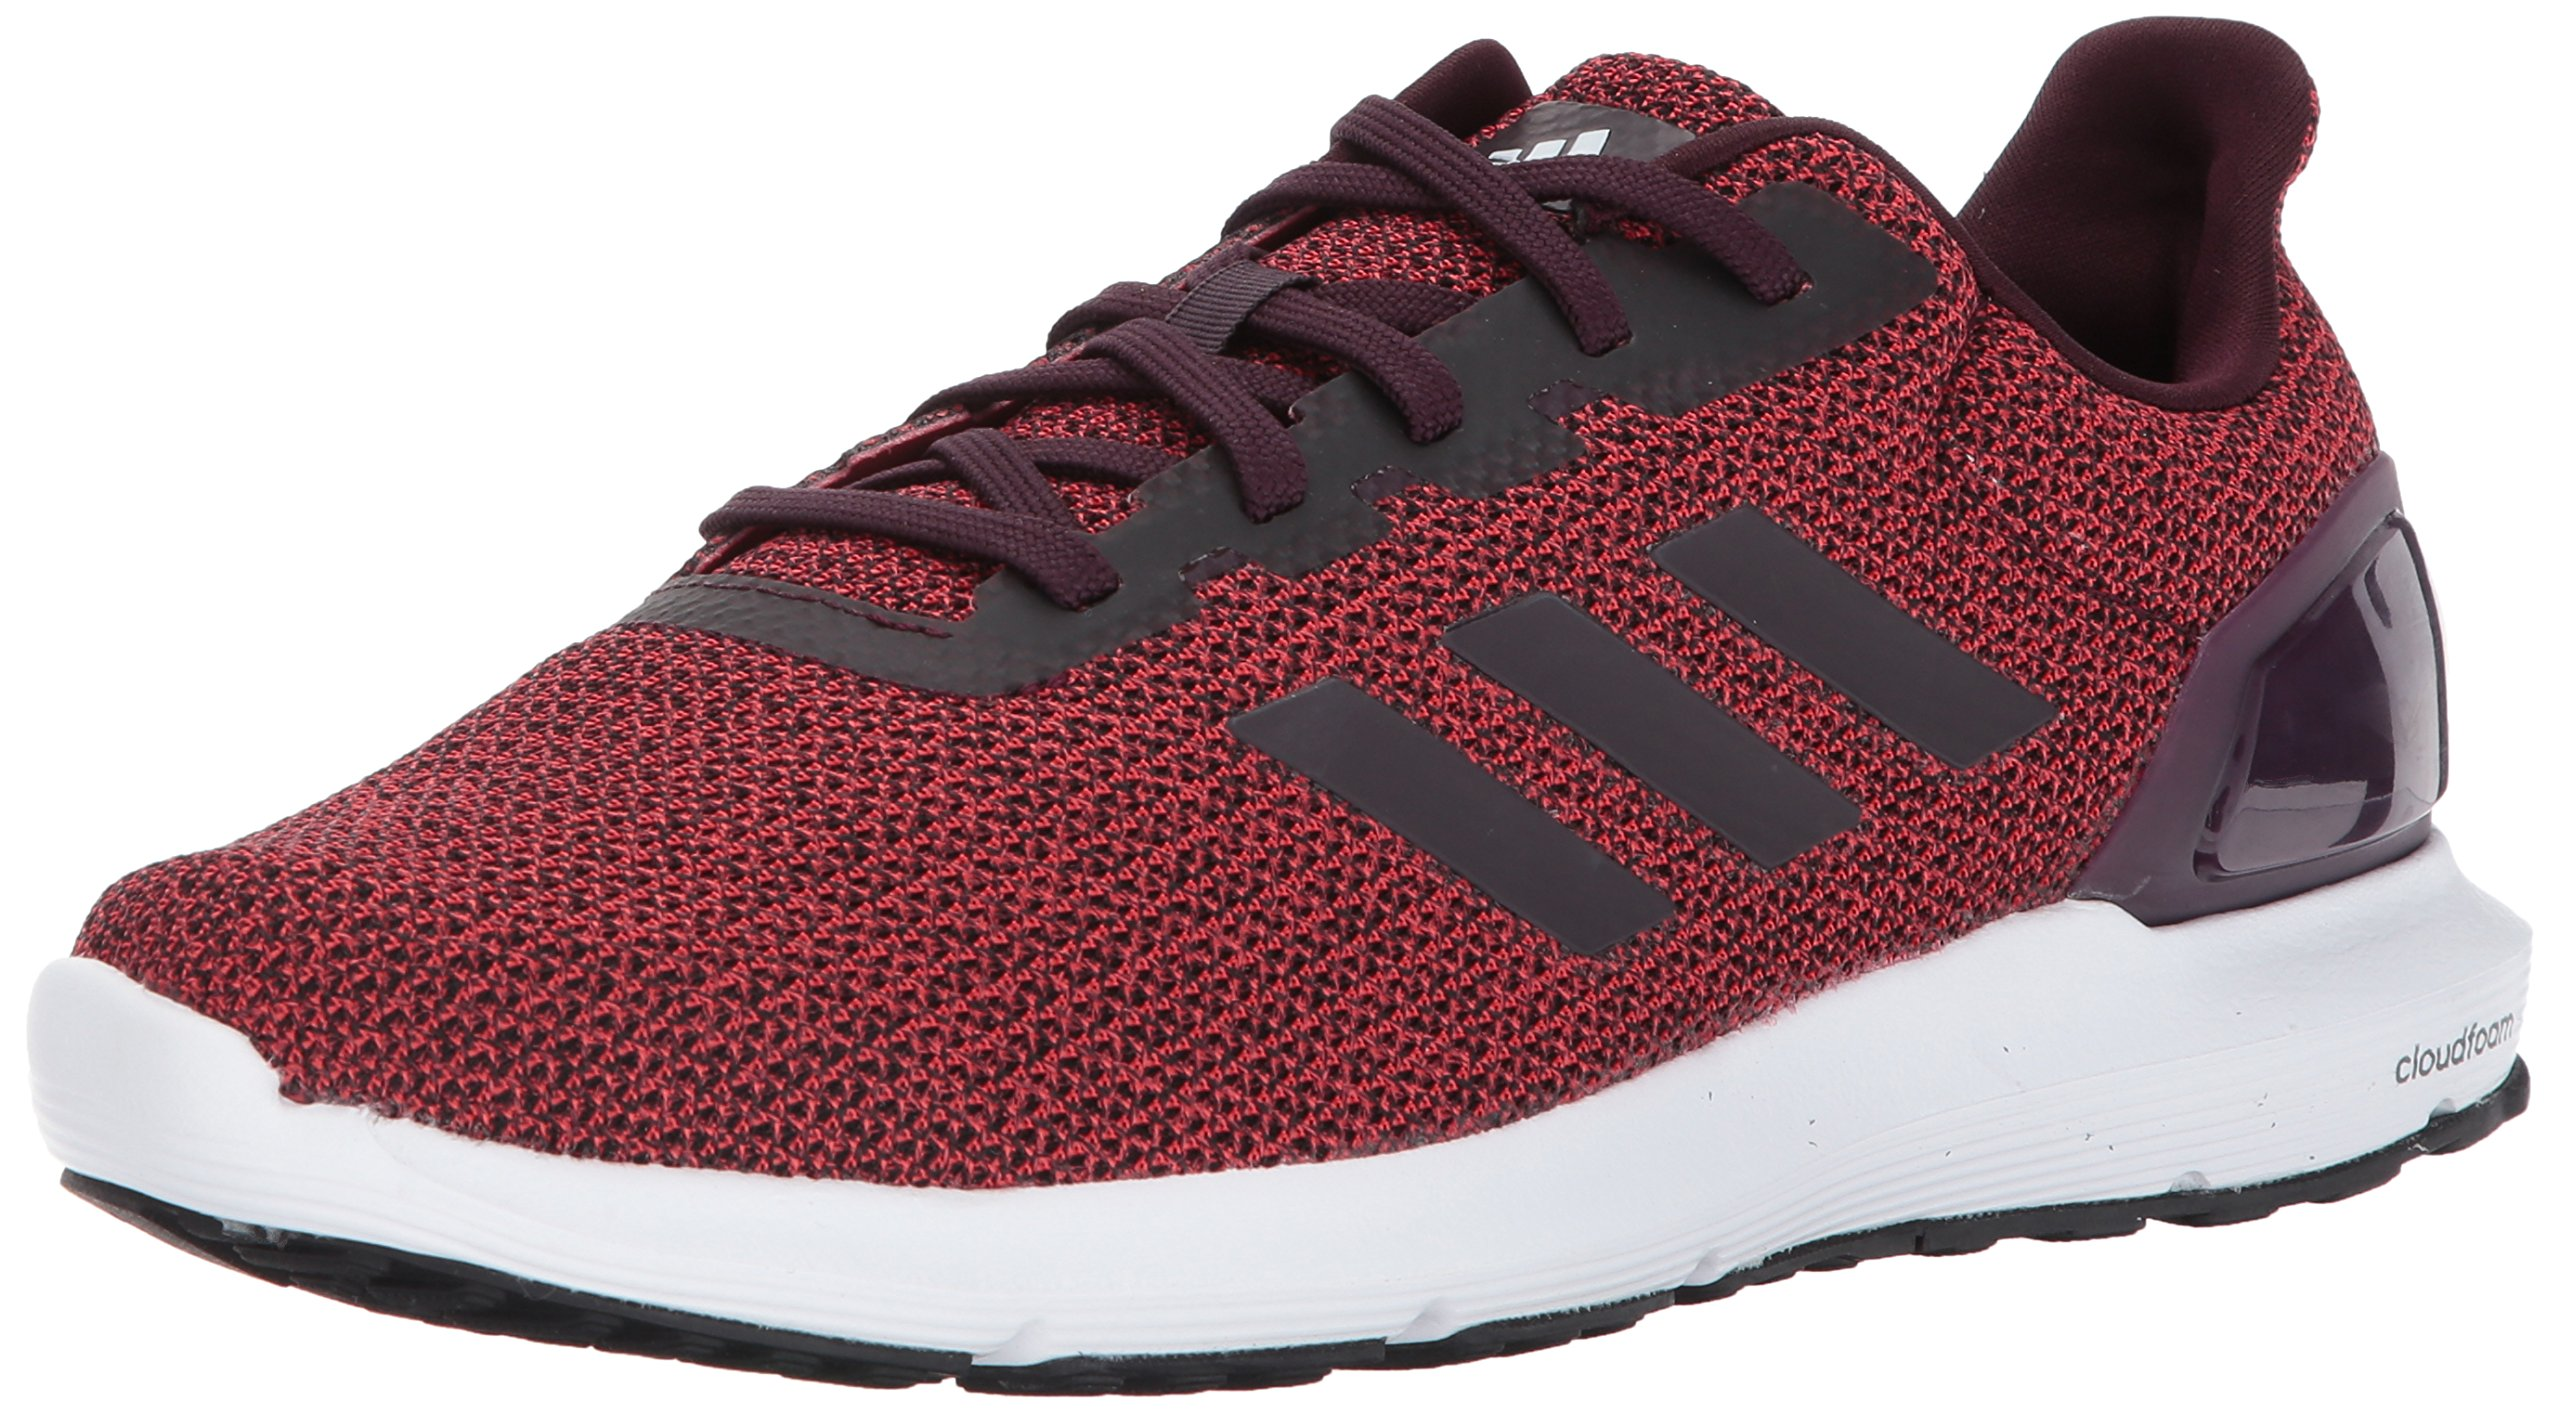 adidas Men's Cosmic 2 Sl m Running Shoe, Dark Burgundy/Dark Burgundy/Tactile Red, 12 Medium US by adidas